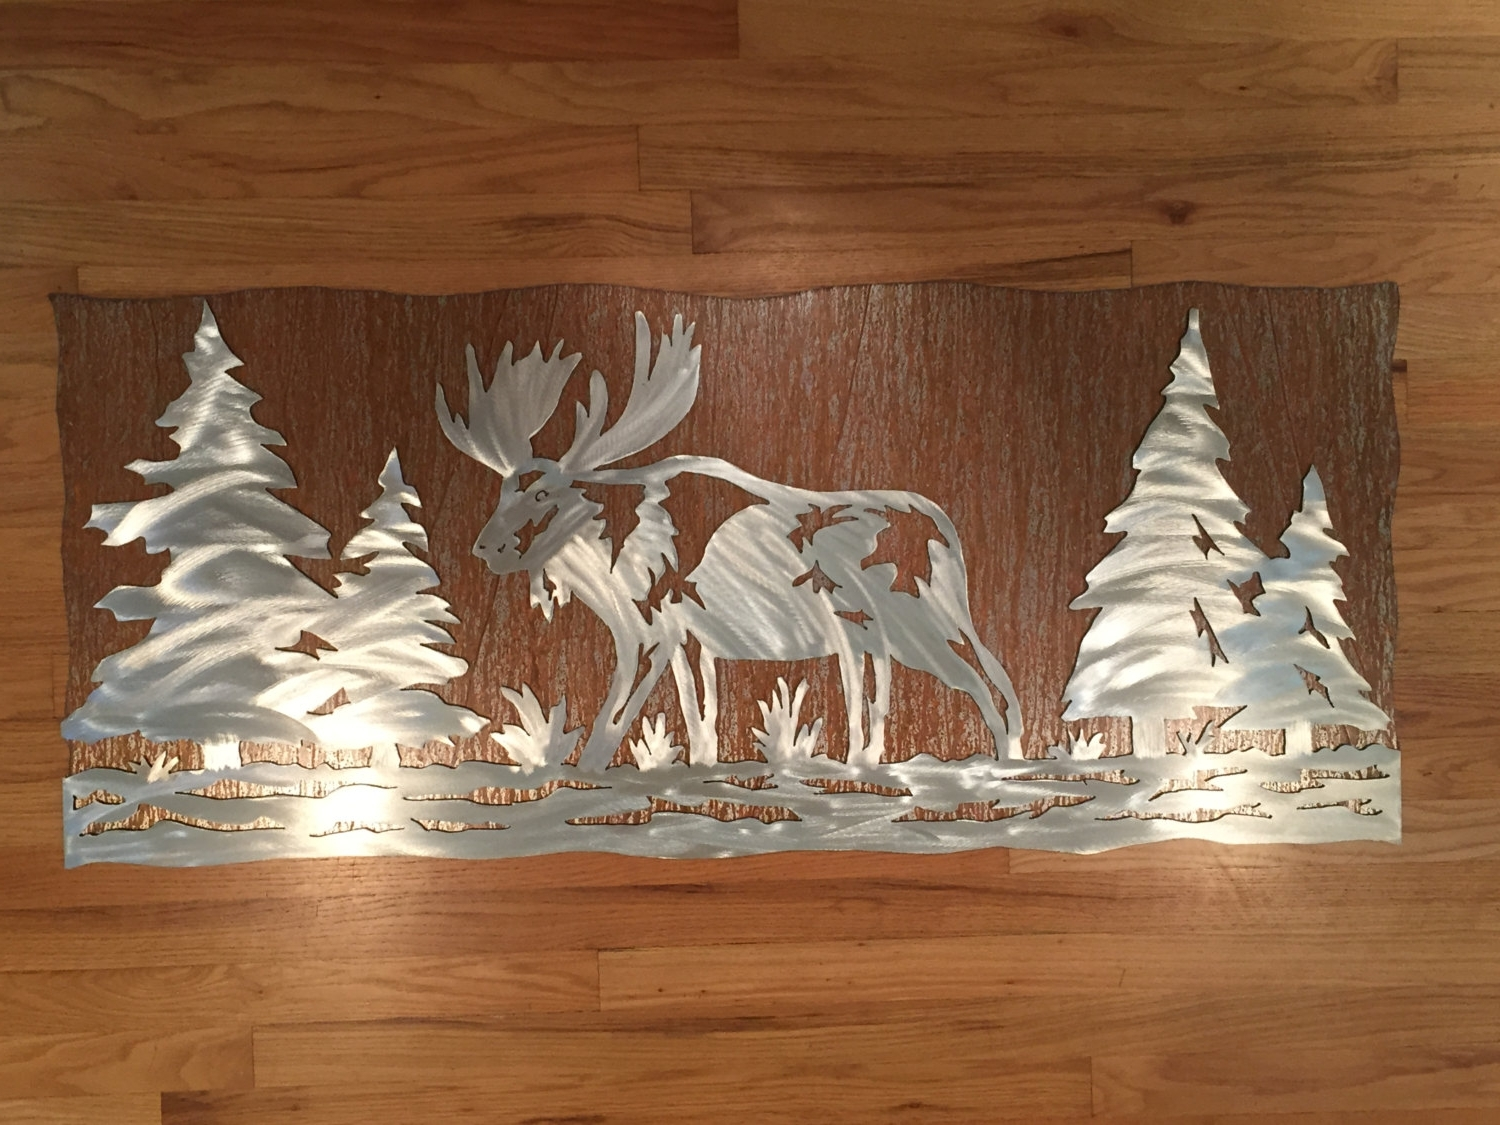 Rustic Fall Decor – Moose Artwork – Rustic Cabin Decor – Gift For In Latest Metal Pine Tree Wall Art (View 14 of 15)